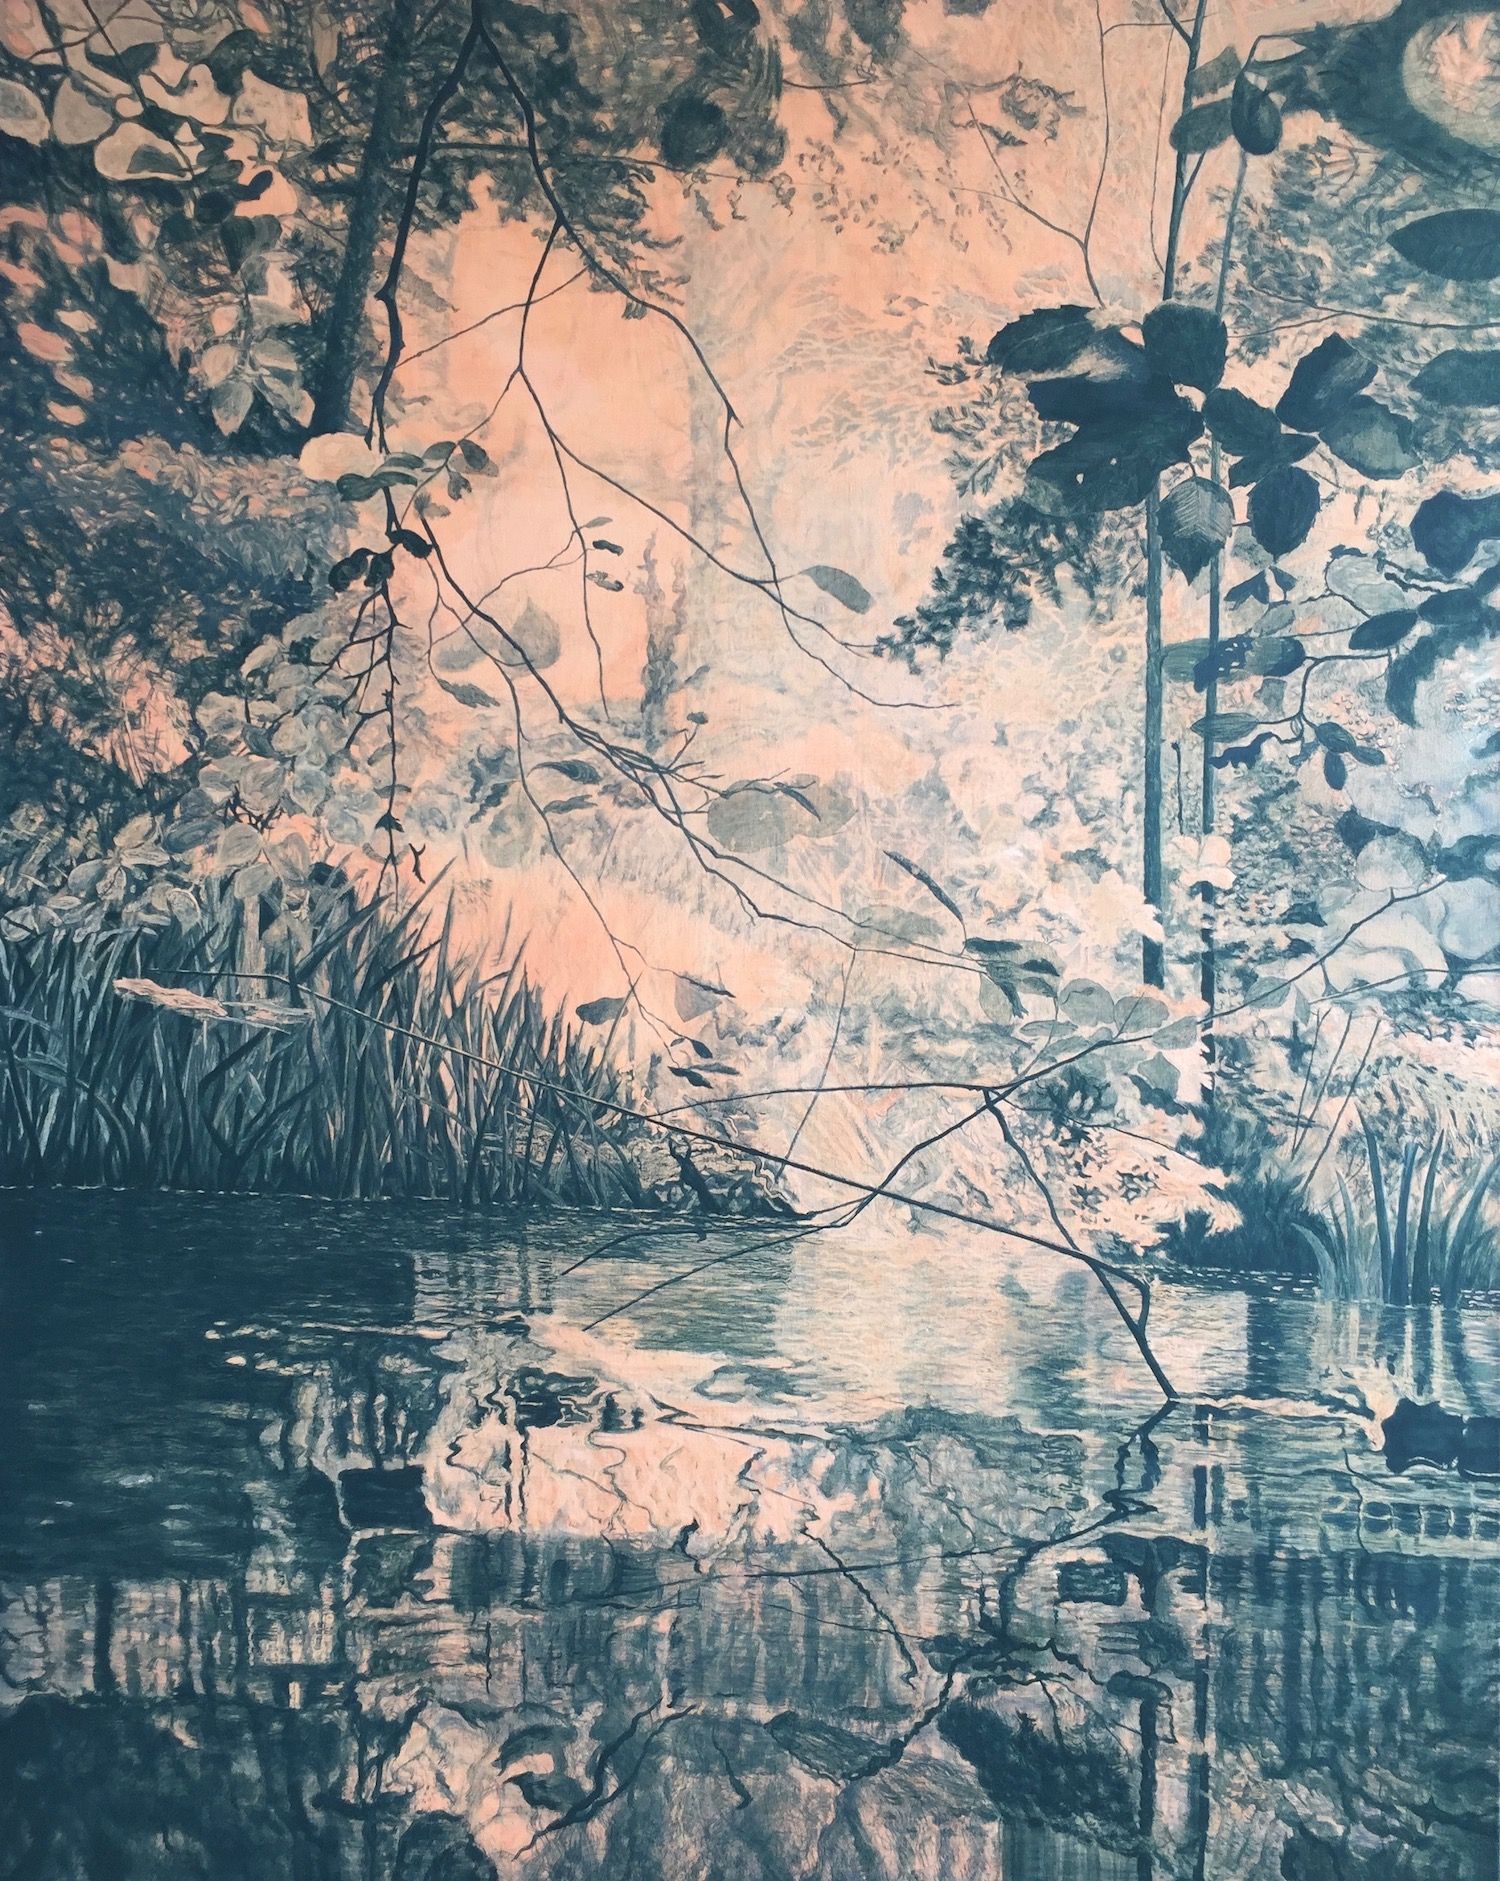 Forest Gloaming. Robyn Litchfield. Jackson's Painting Prize.